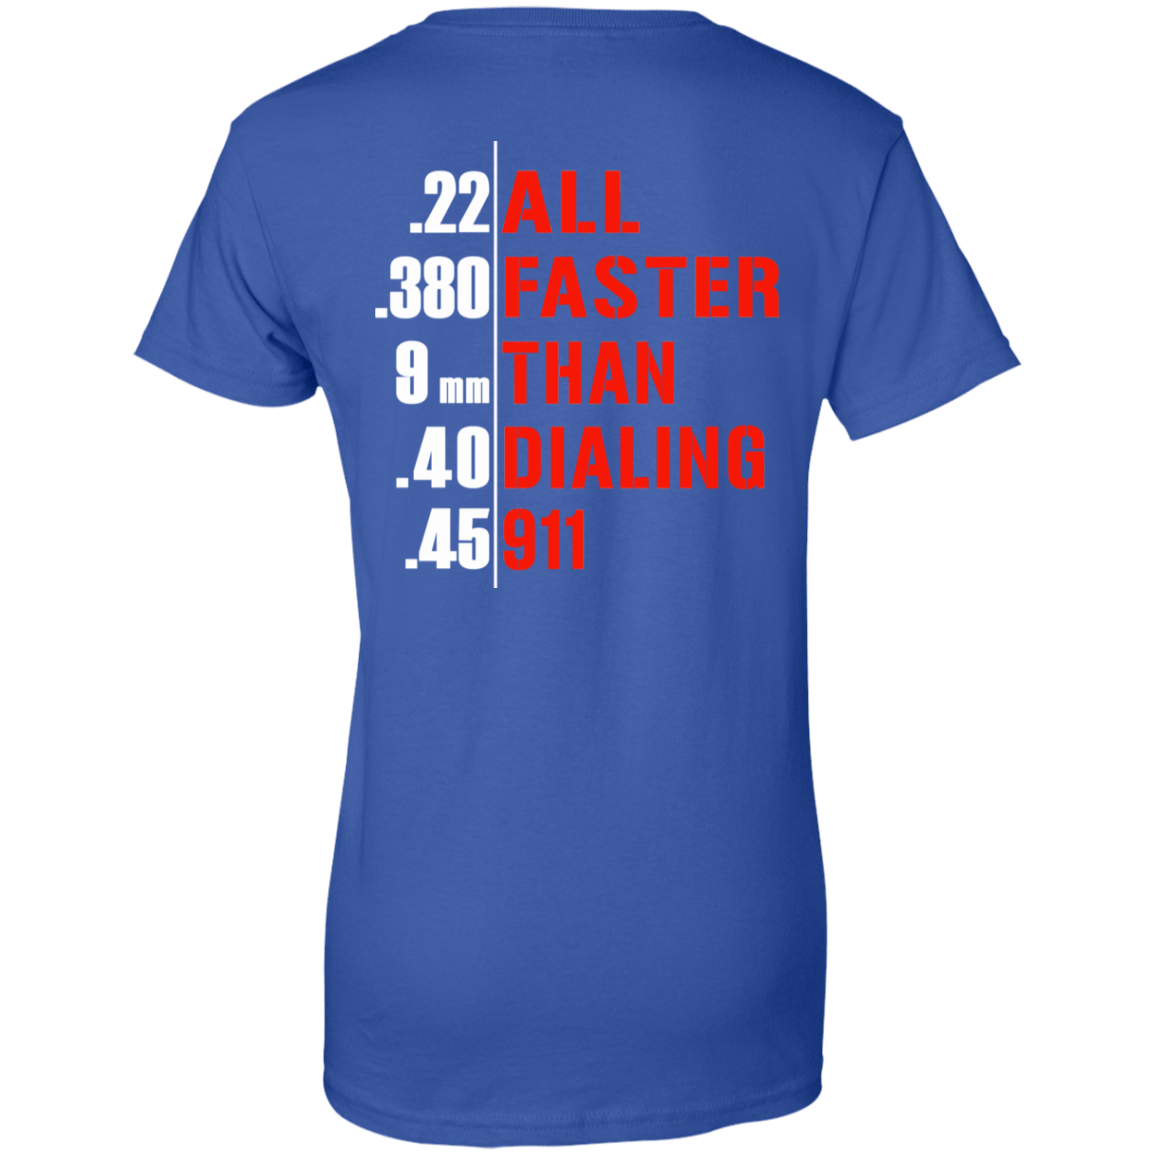 All Faster Than Dialing 911 Guns - TEE RIPT